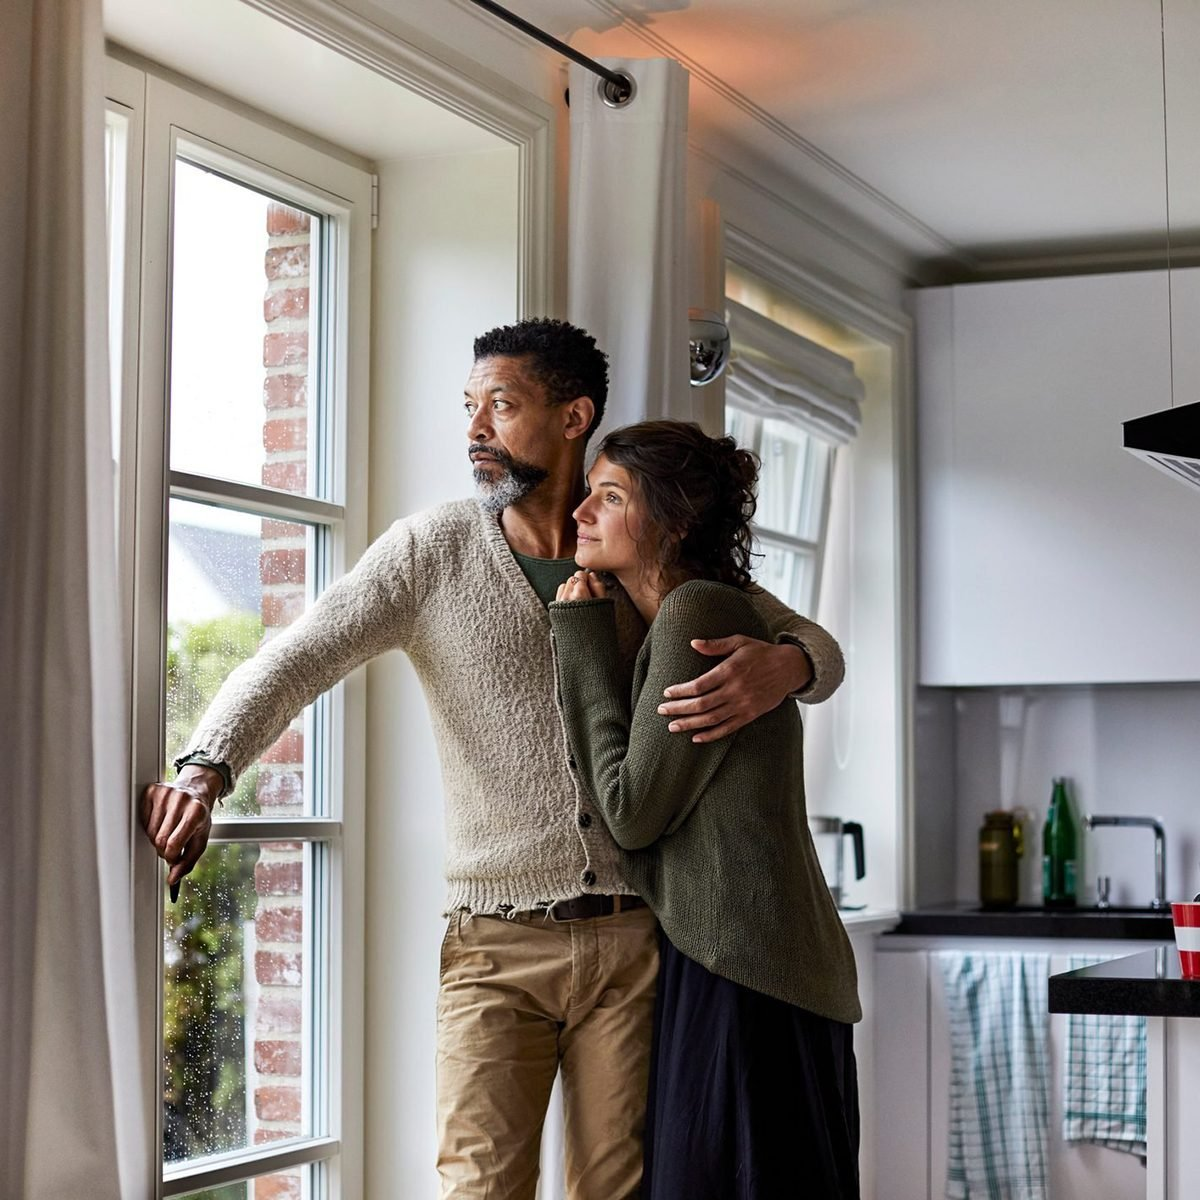 Pensive man embracing young woman looking out of window in kitchen